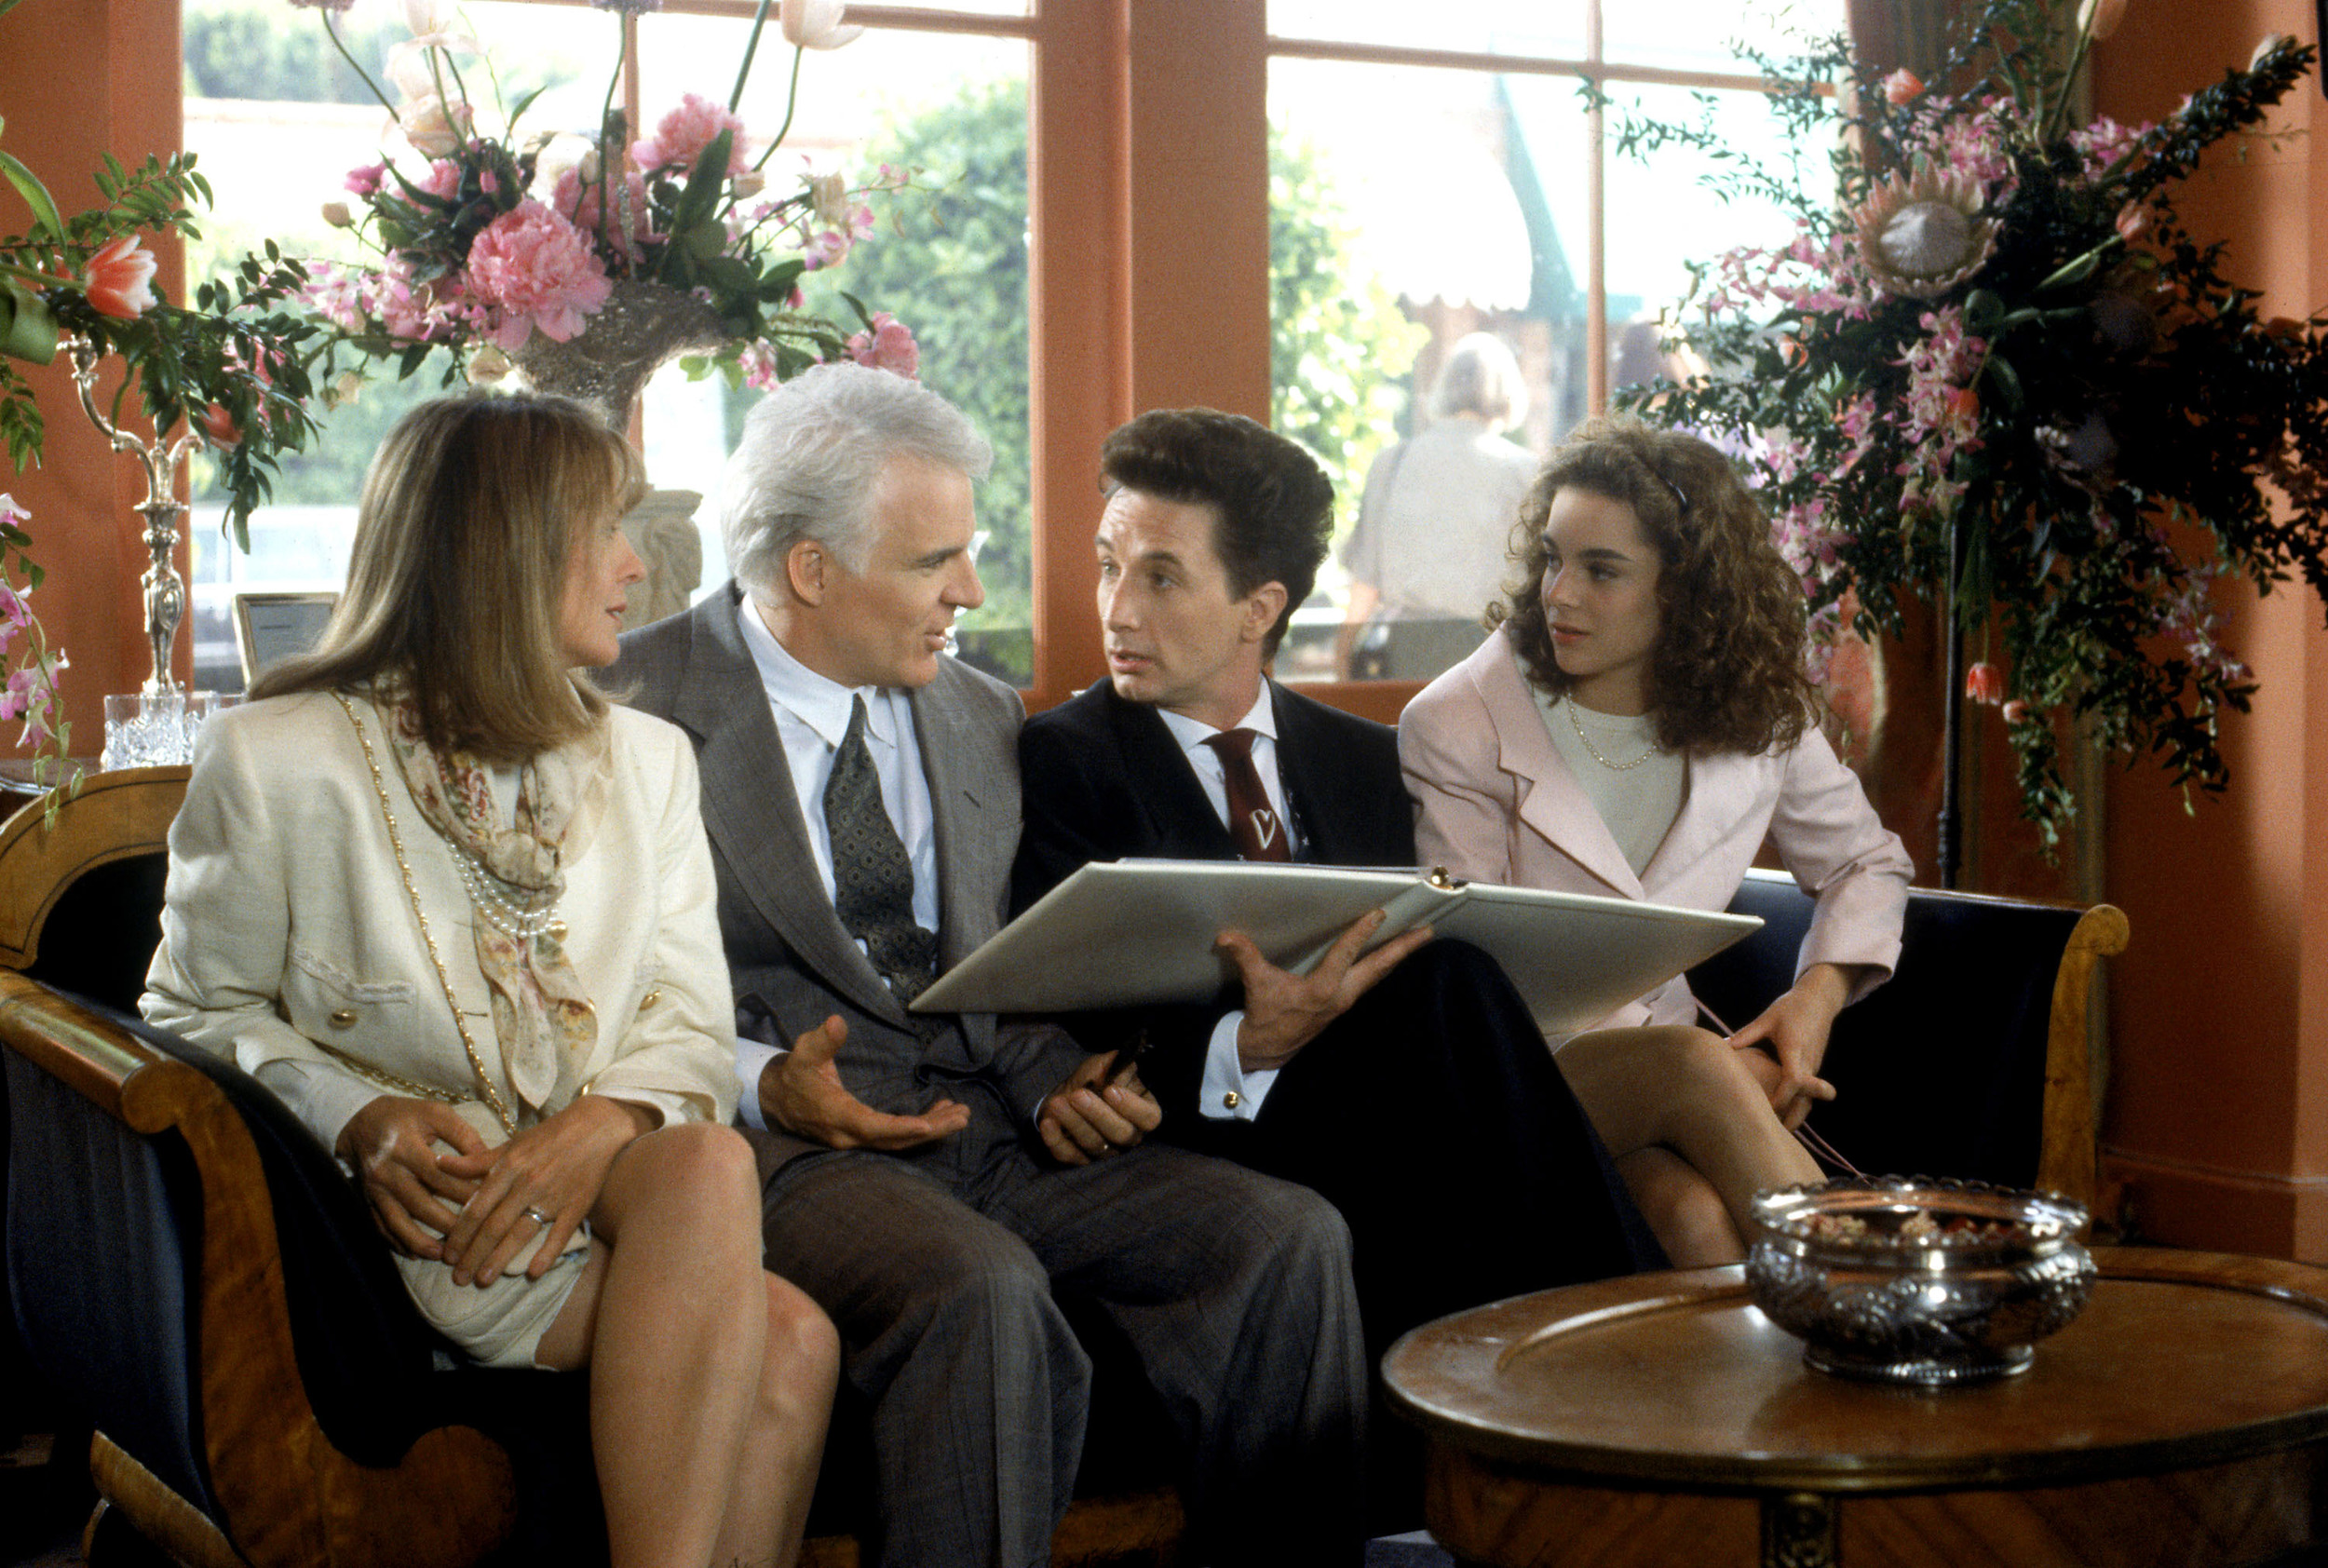 Make all your final decisions and don't leave anything to chance. Get help if you are not confident or by the process! Image: Father Of The Bride during a wedding planning session.